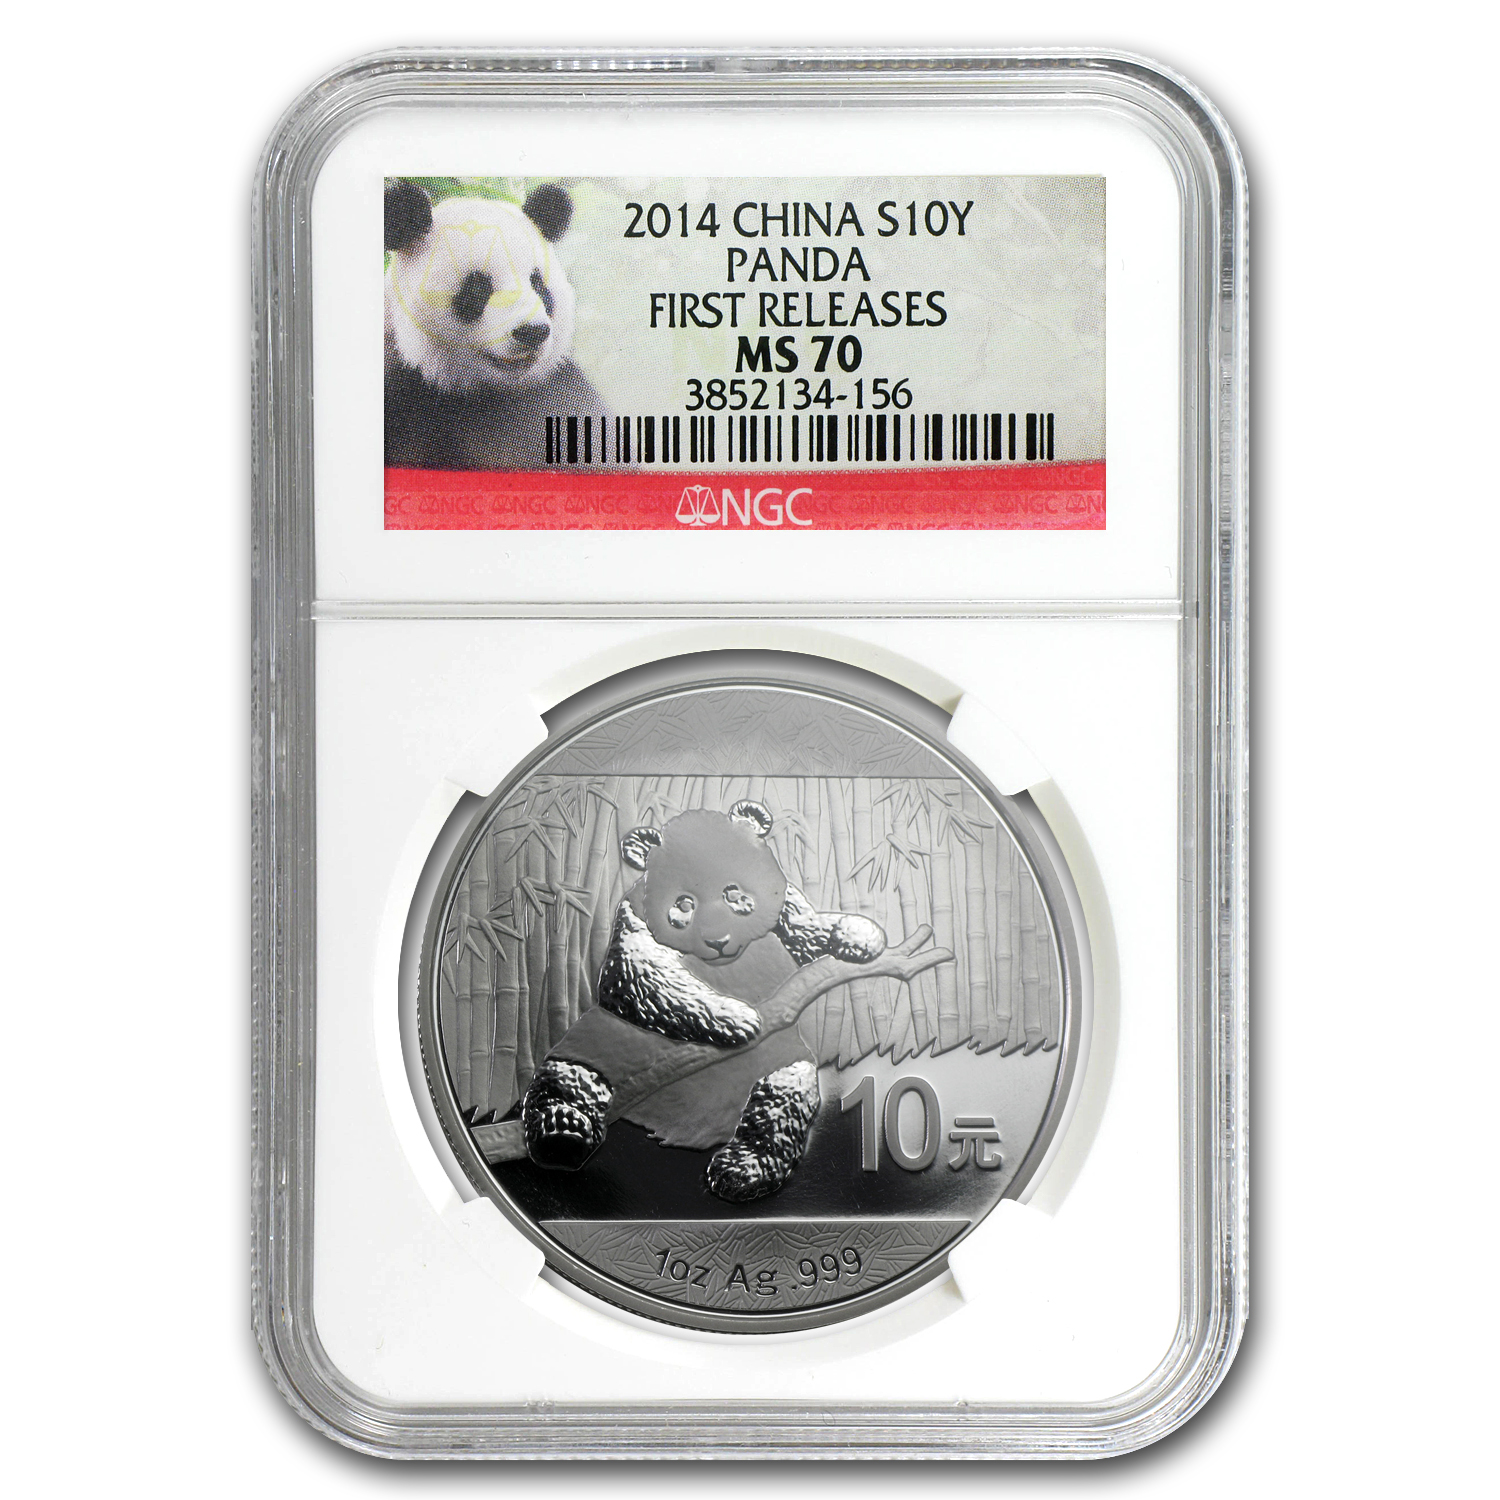 2014 China 1 oz Silver Panda MS-70 NGC (First Releases)